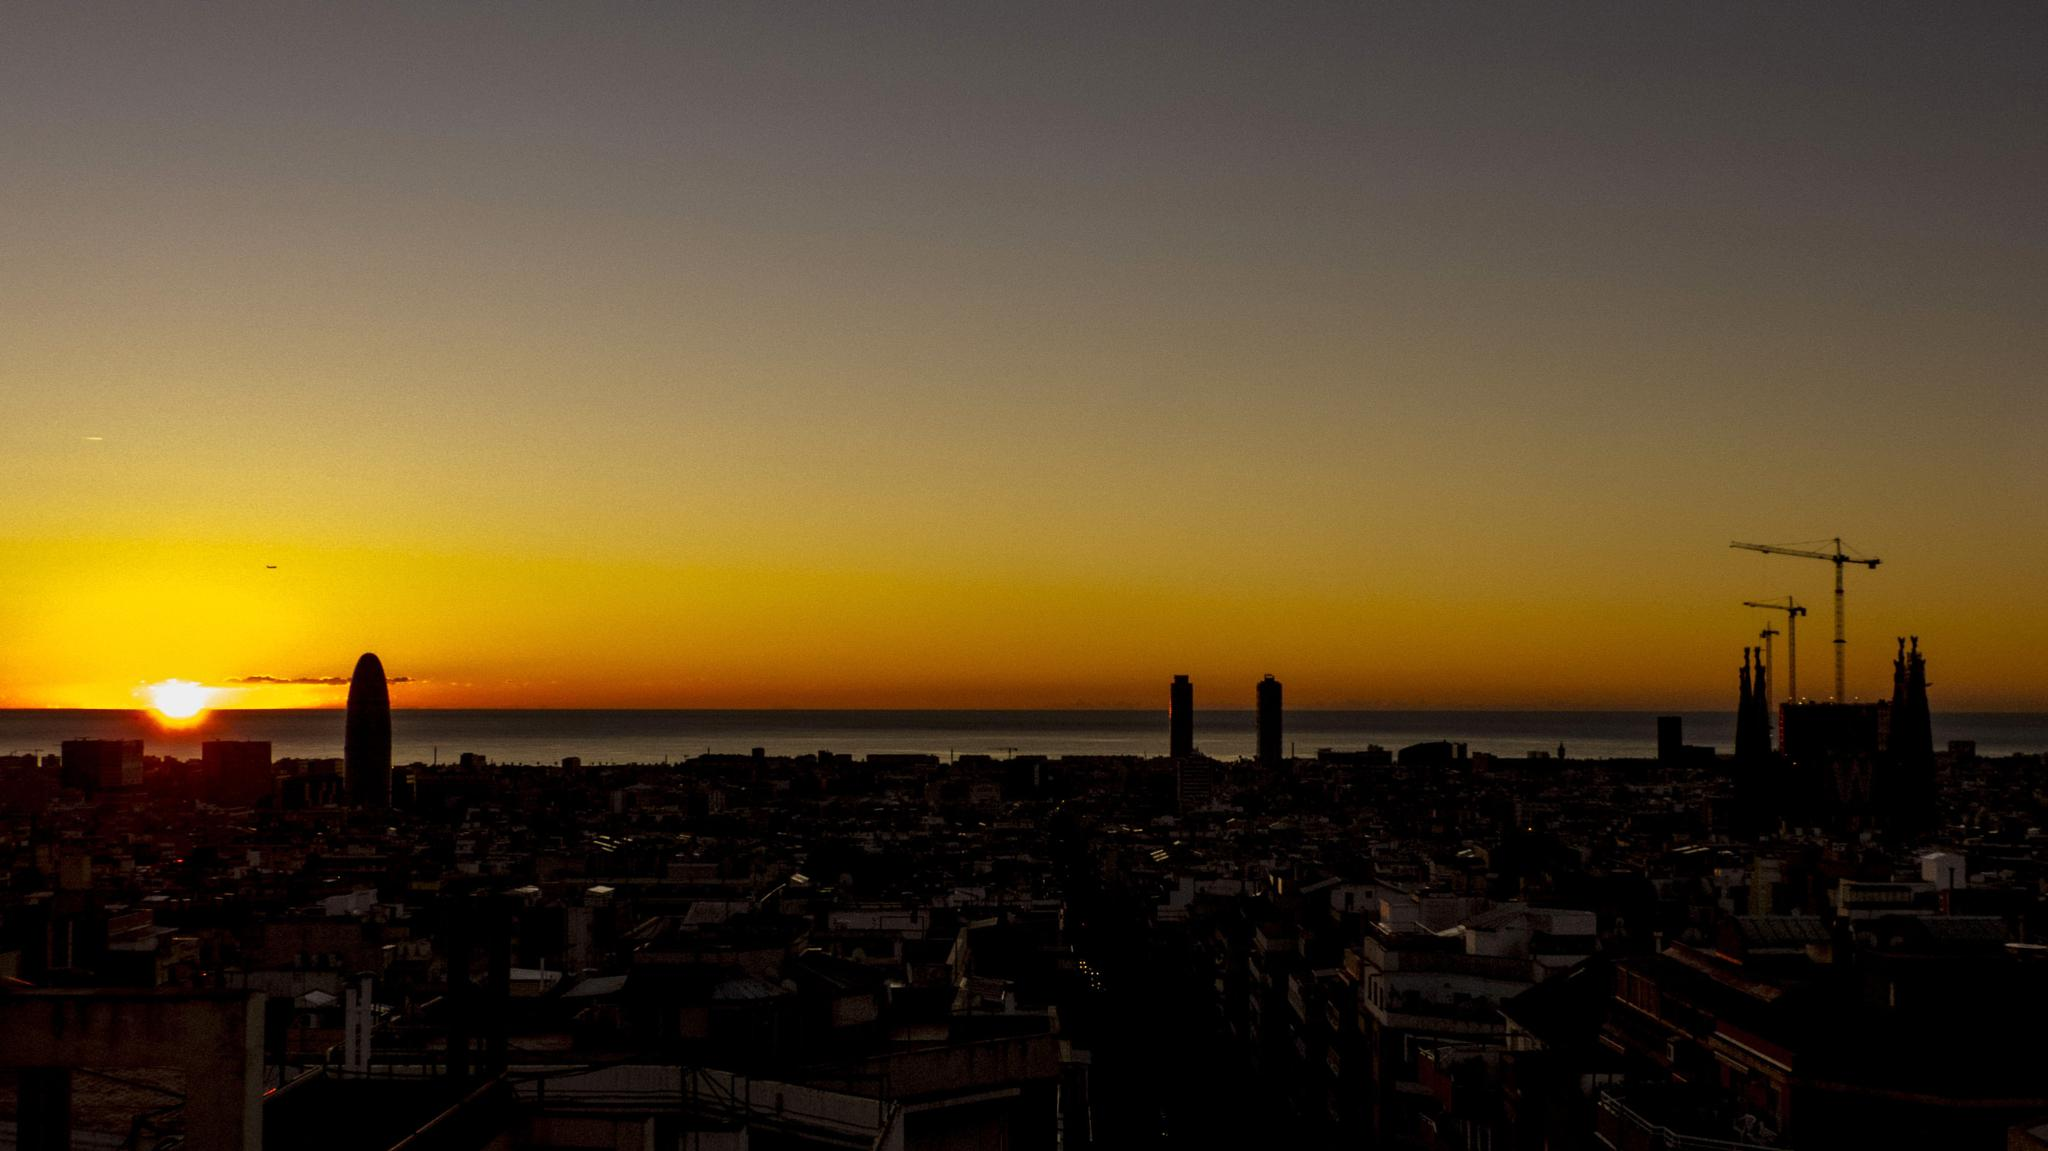 sunrise barcelona by joanlladoARTS